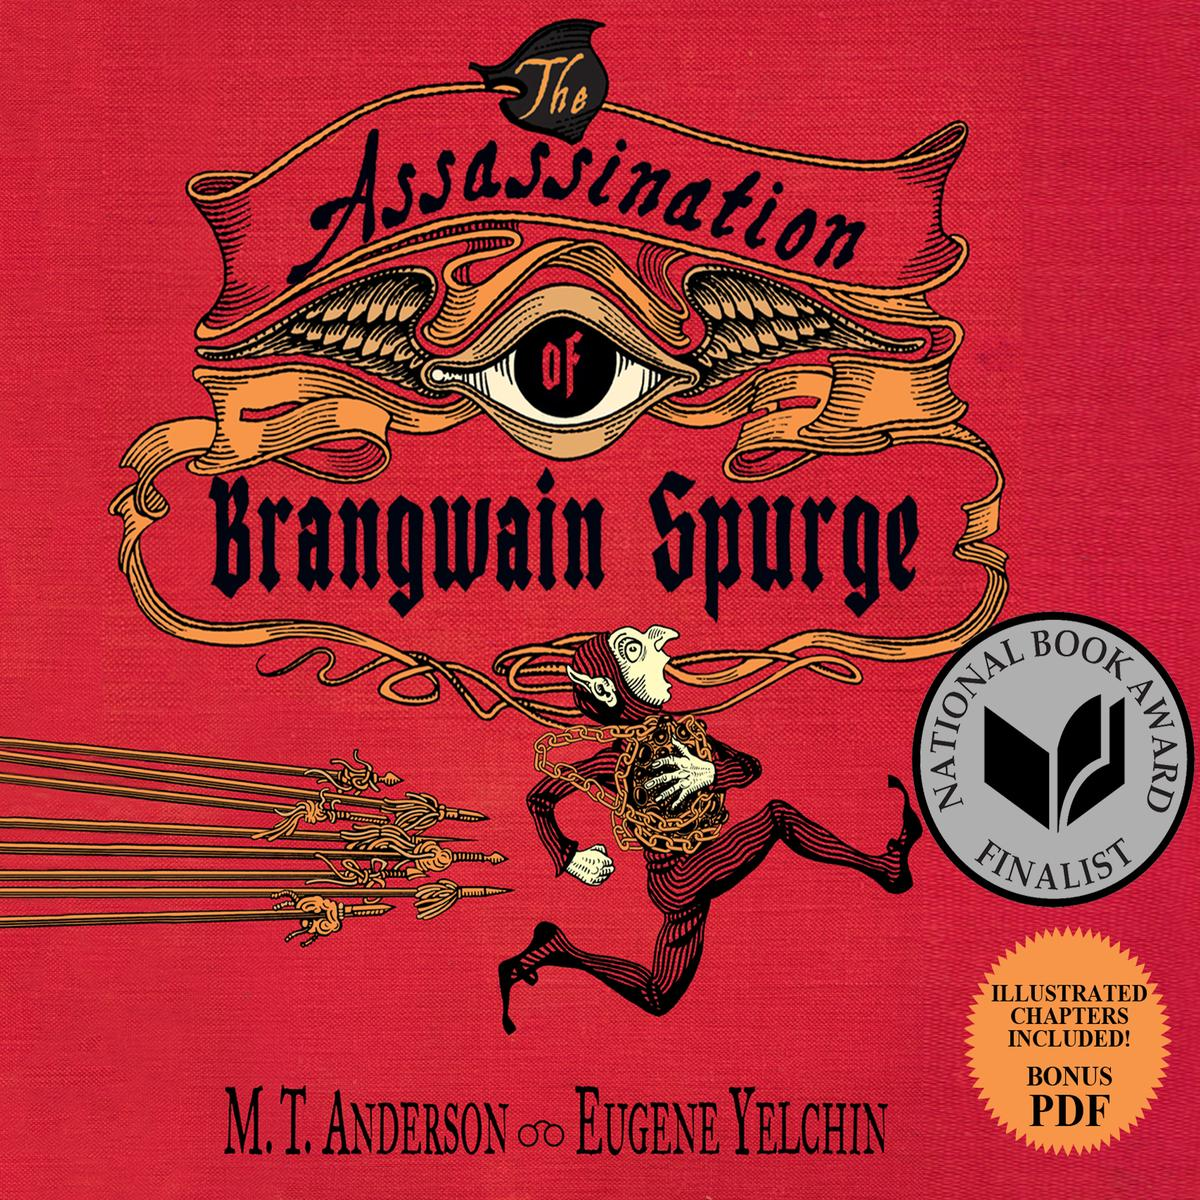 The Assassination of Brangwain Spurge - Audiobook